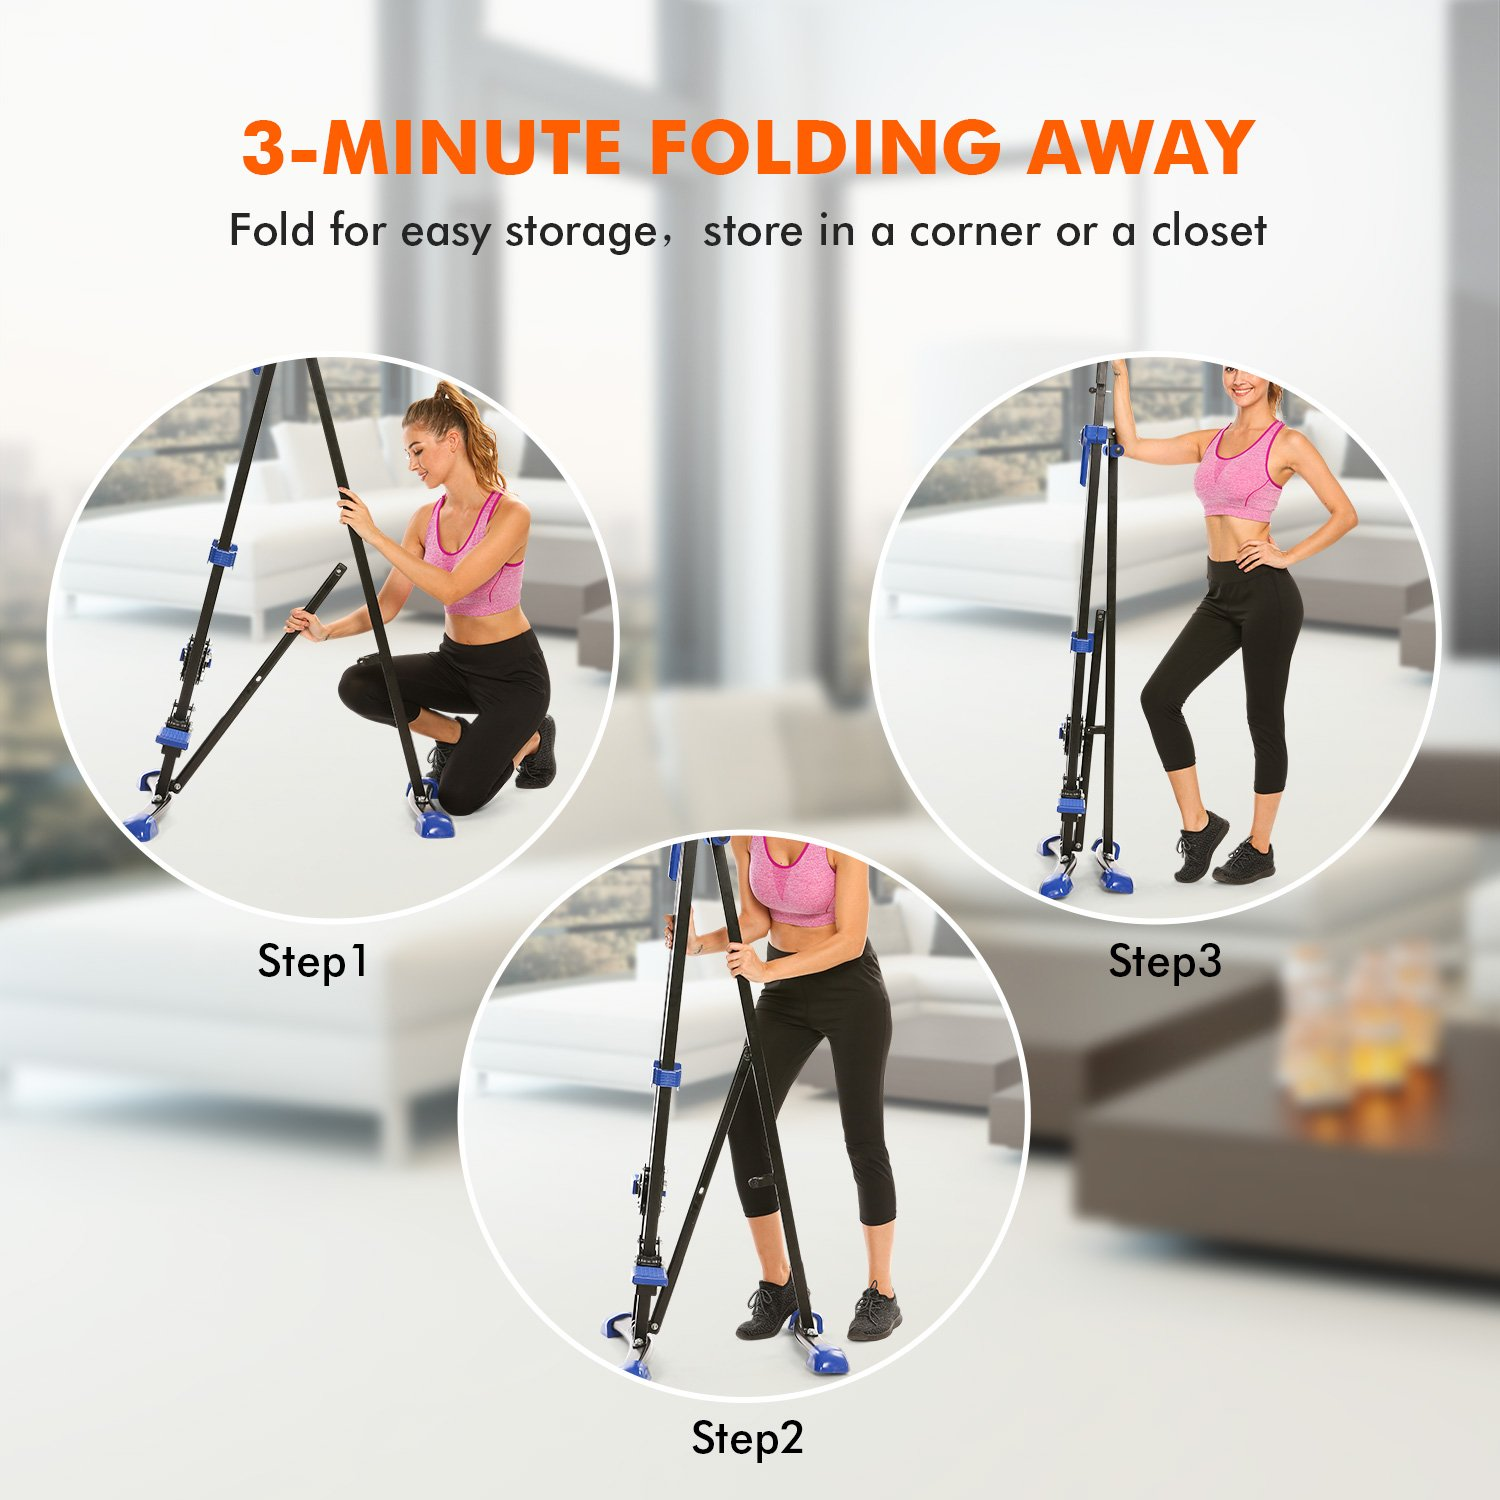 Dozenla Vertical Climber Stepper 2 In 1 Climbing Machine Exercise Fitness Foldable Stair Cardio Equipment [US Stock] by Dozenla (Image #6)